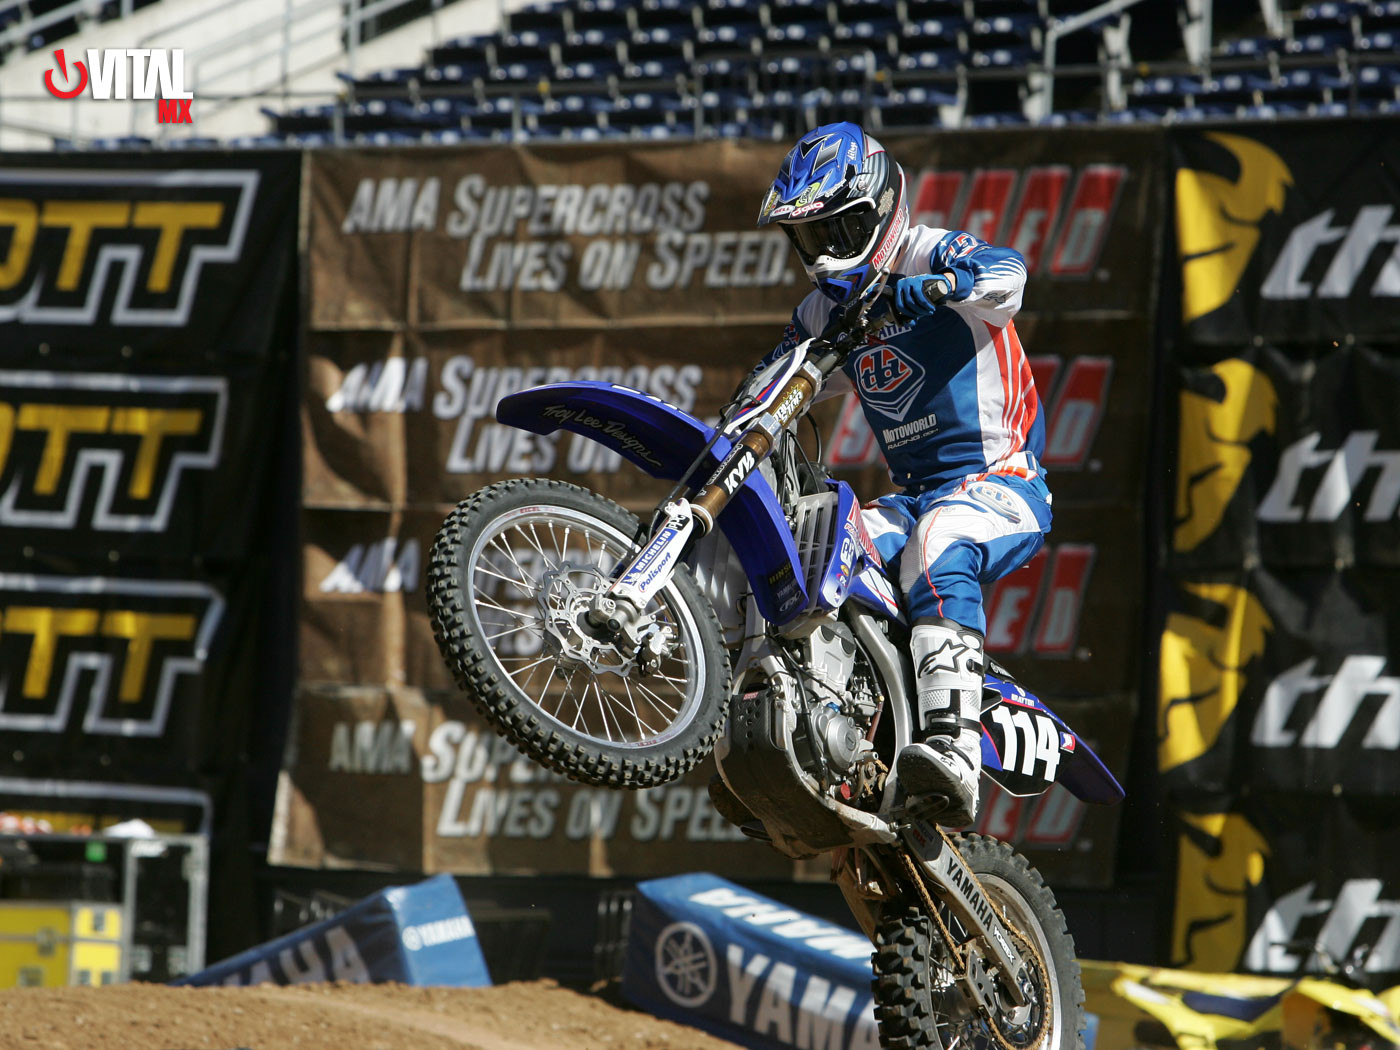 Justin Brayton 1400 x 1050 - 2007 San Diego Press Day - Motocross Pictures - Vital MX